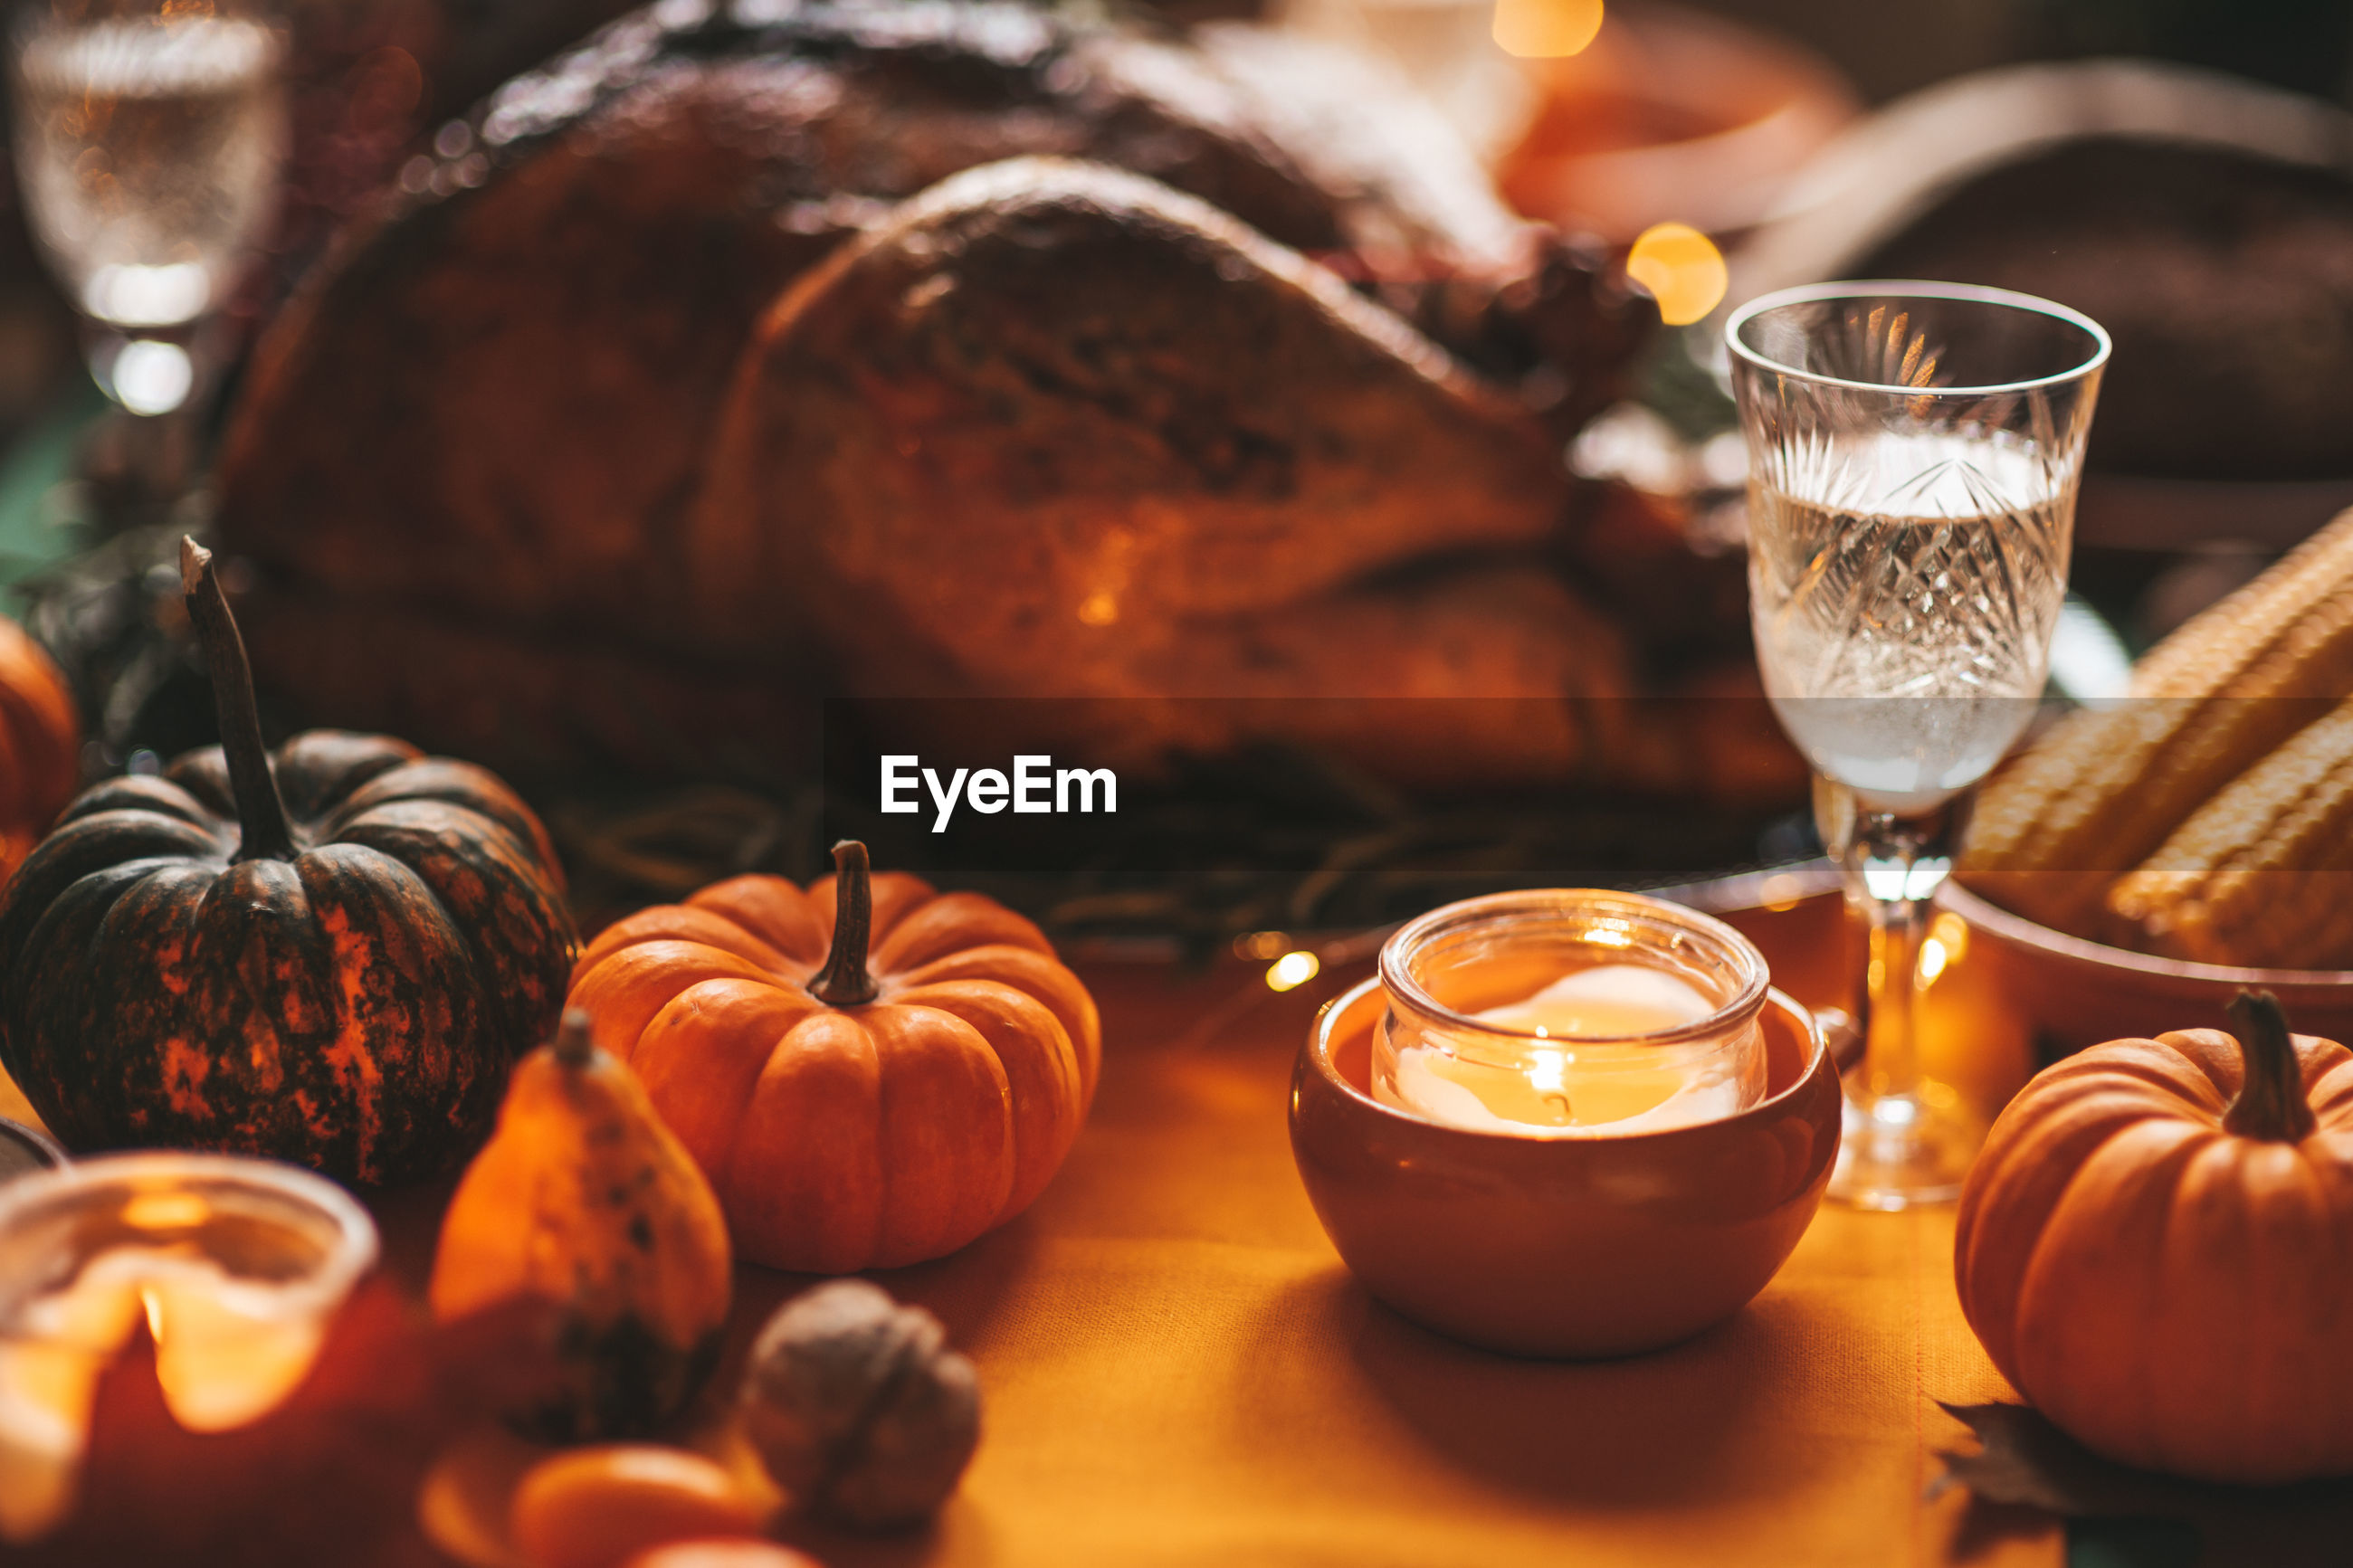 CLOSE-UP OF PUMPKIN AND WINE ON TABLE